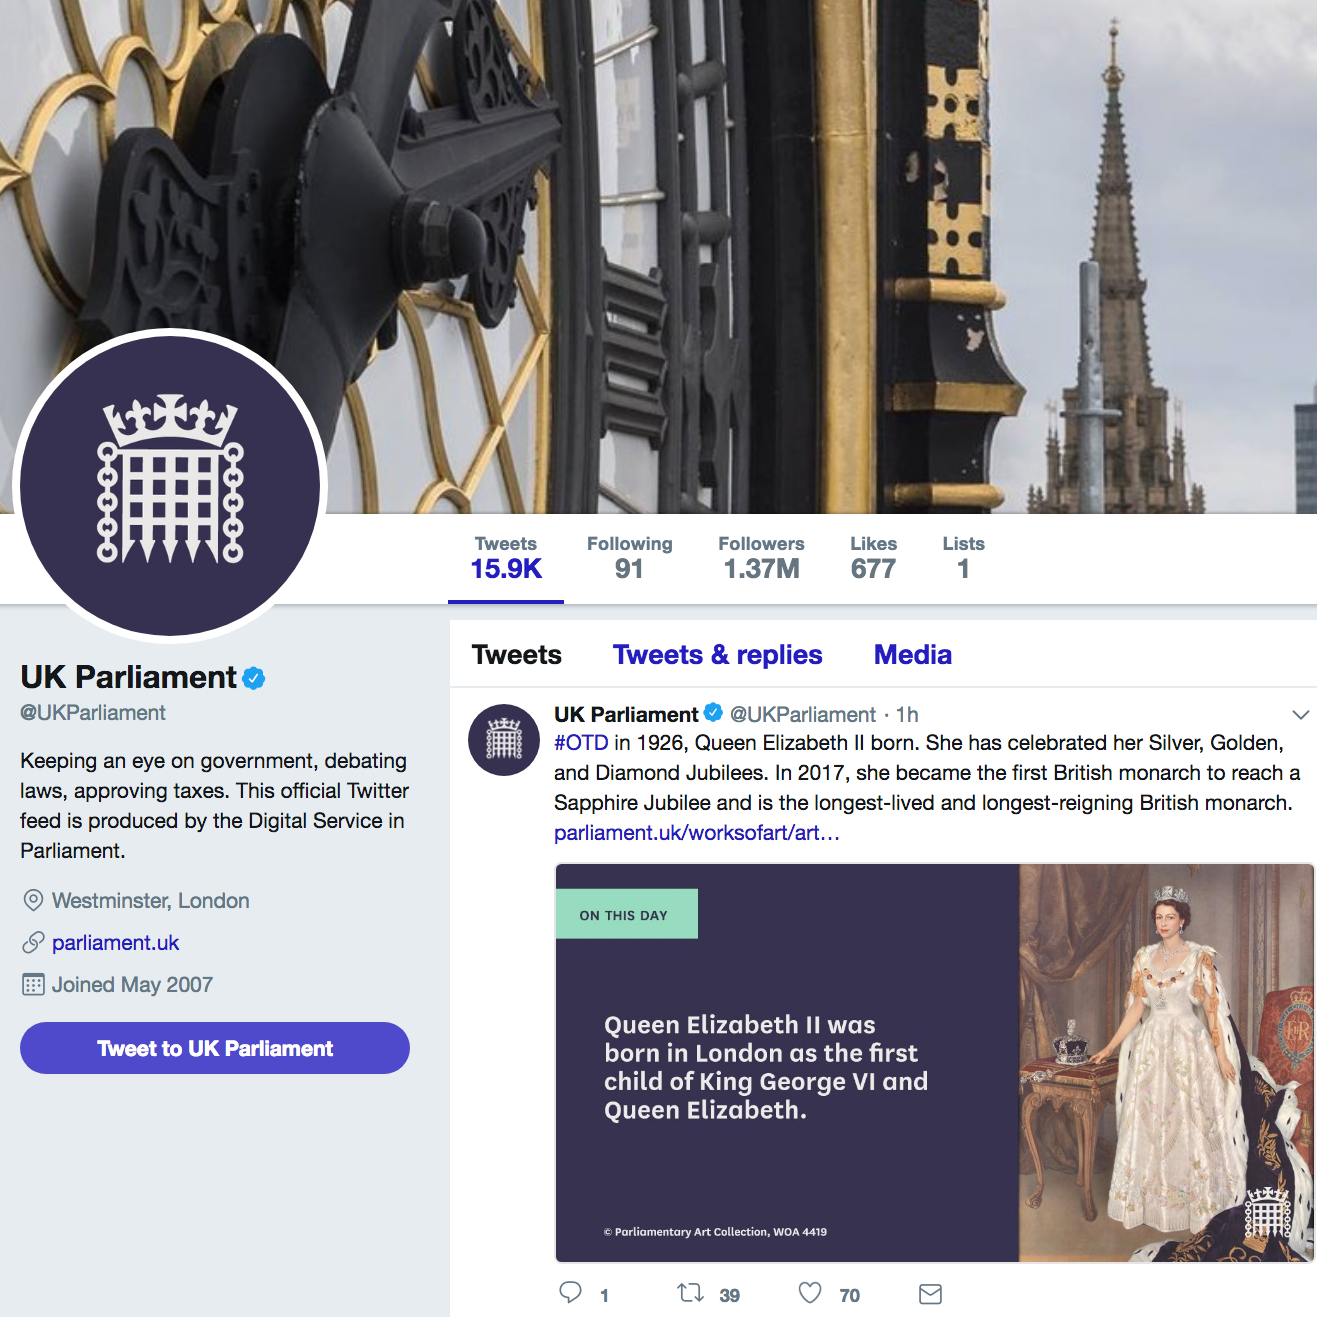 UK Parliament social media branding - Working with the design team in PDS and external agency SomeOne, UK Parliament's branding was implemented on all their social media channels.